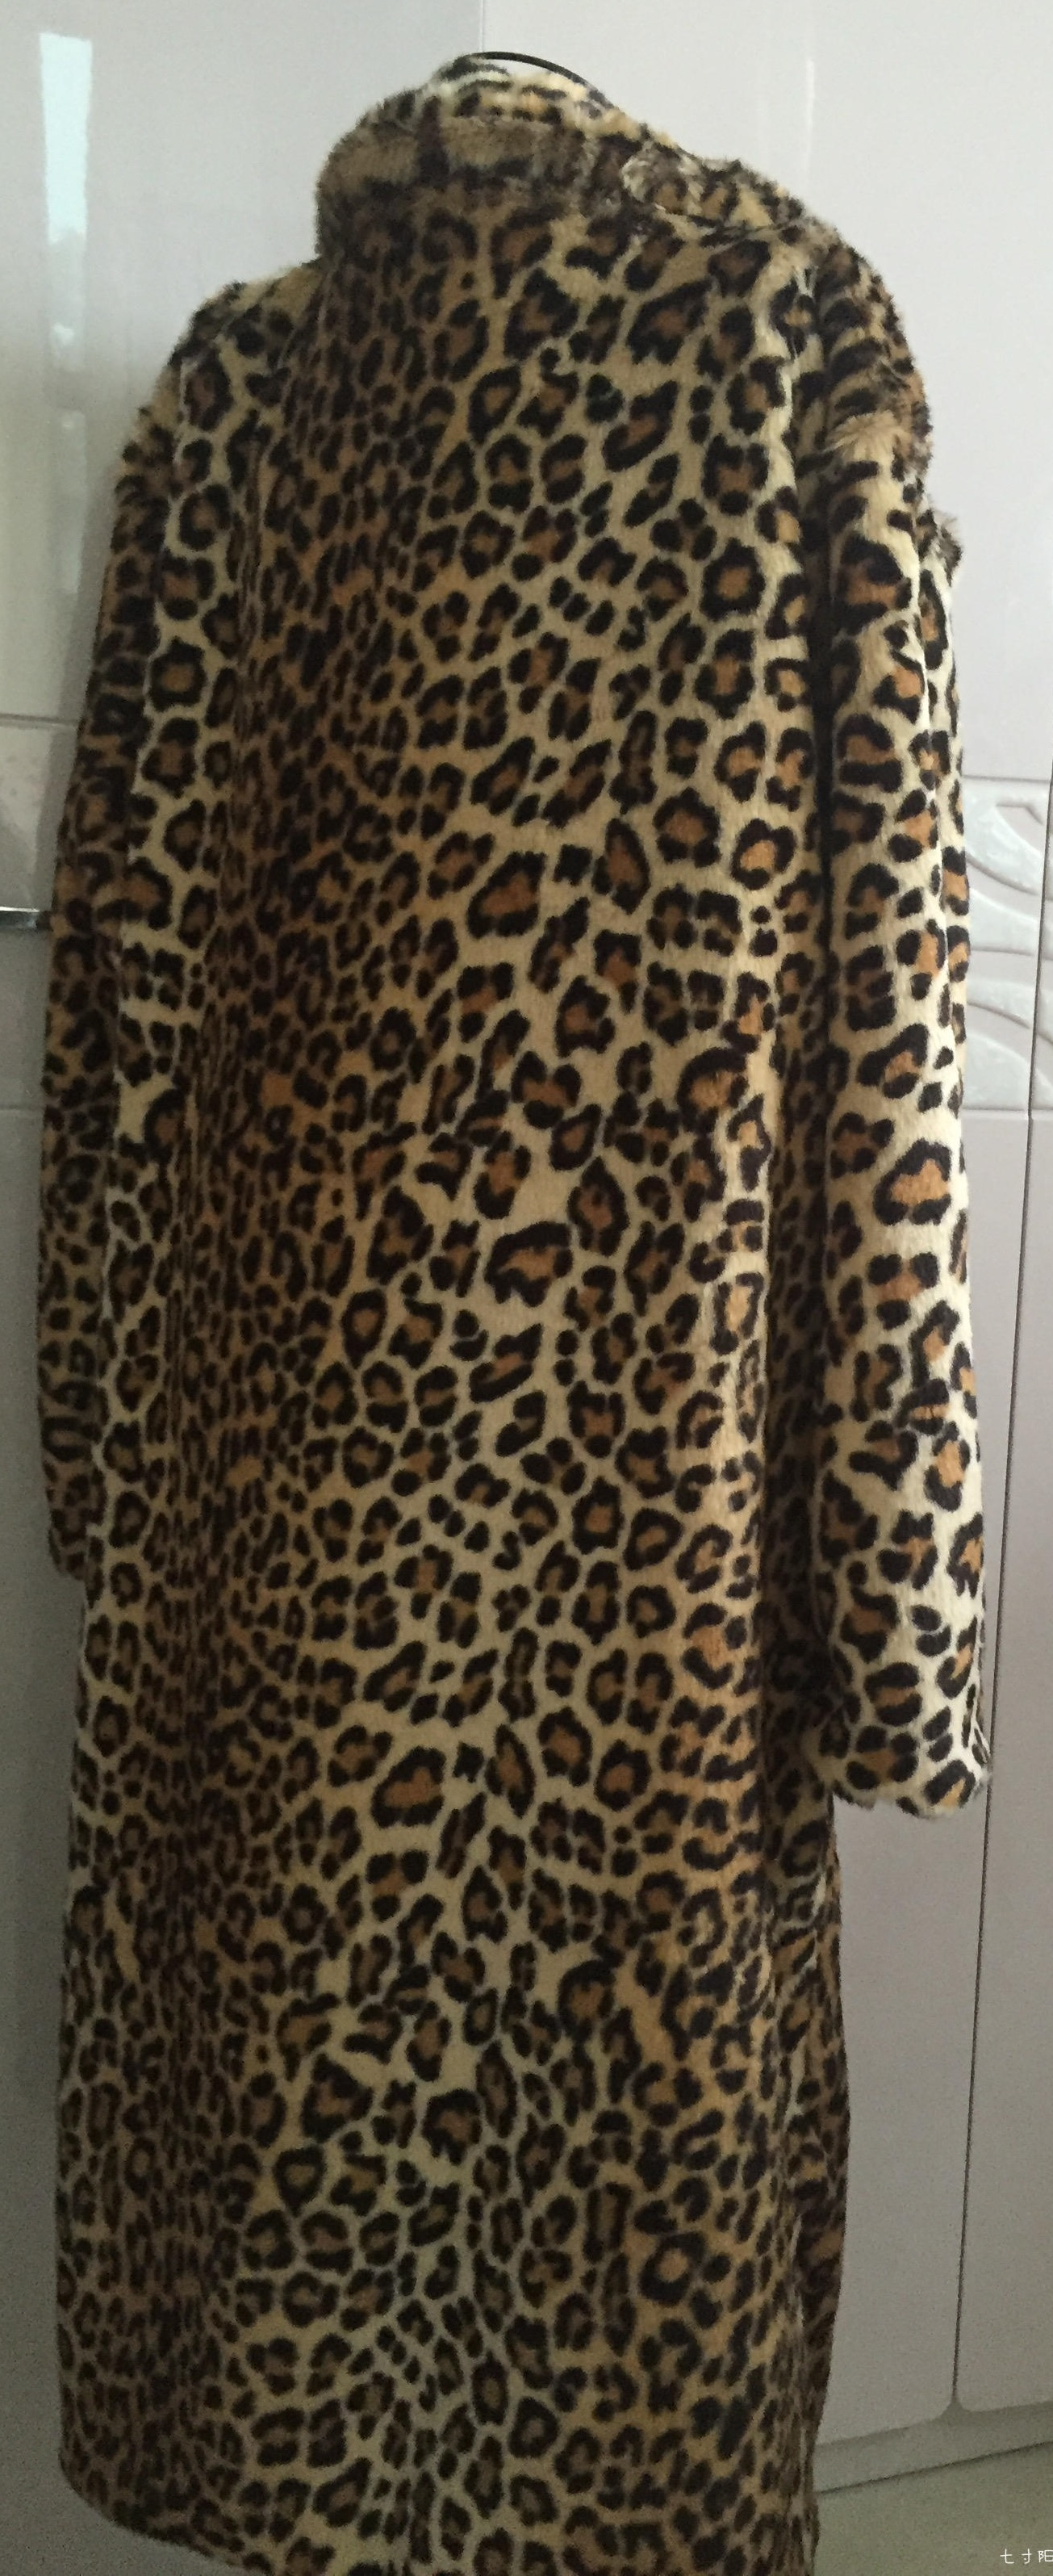 BigBang G Dragon MV Leopard Fur Jacket